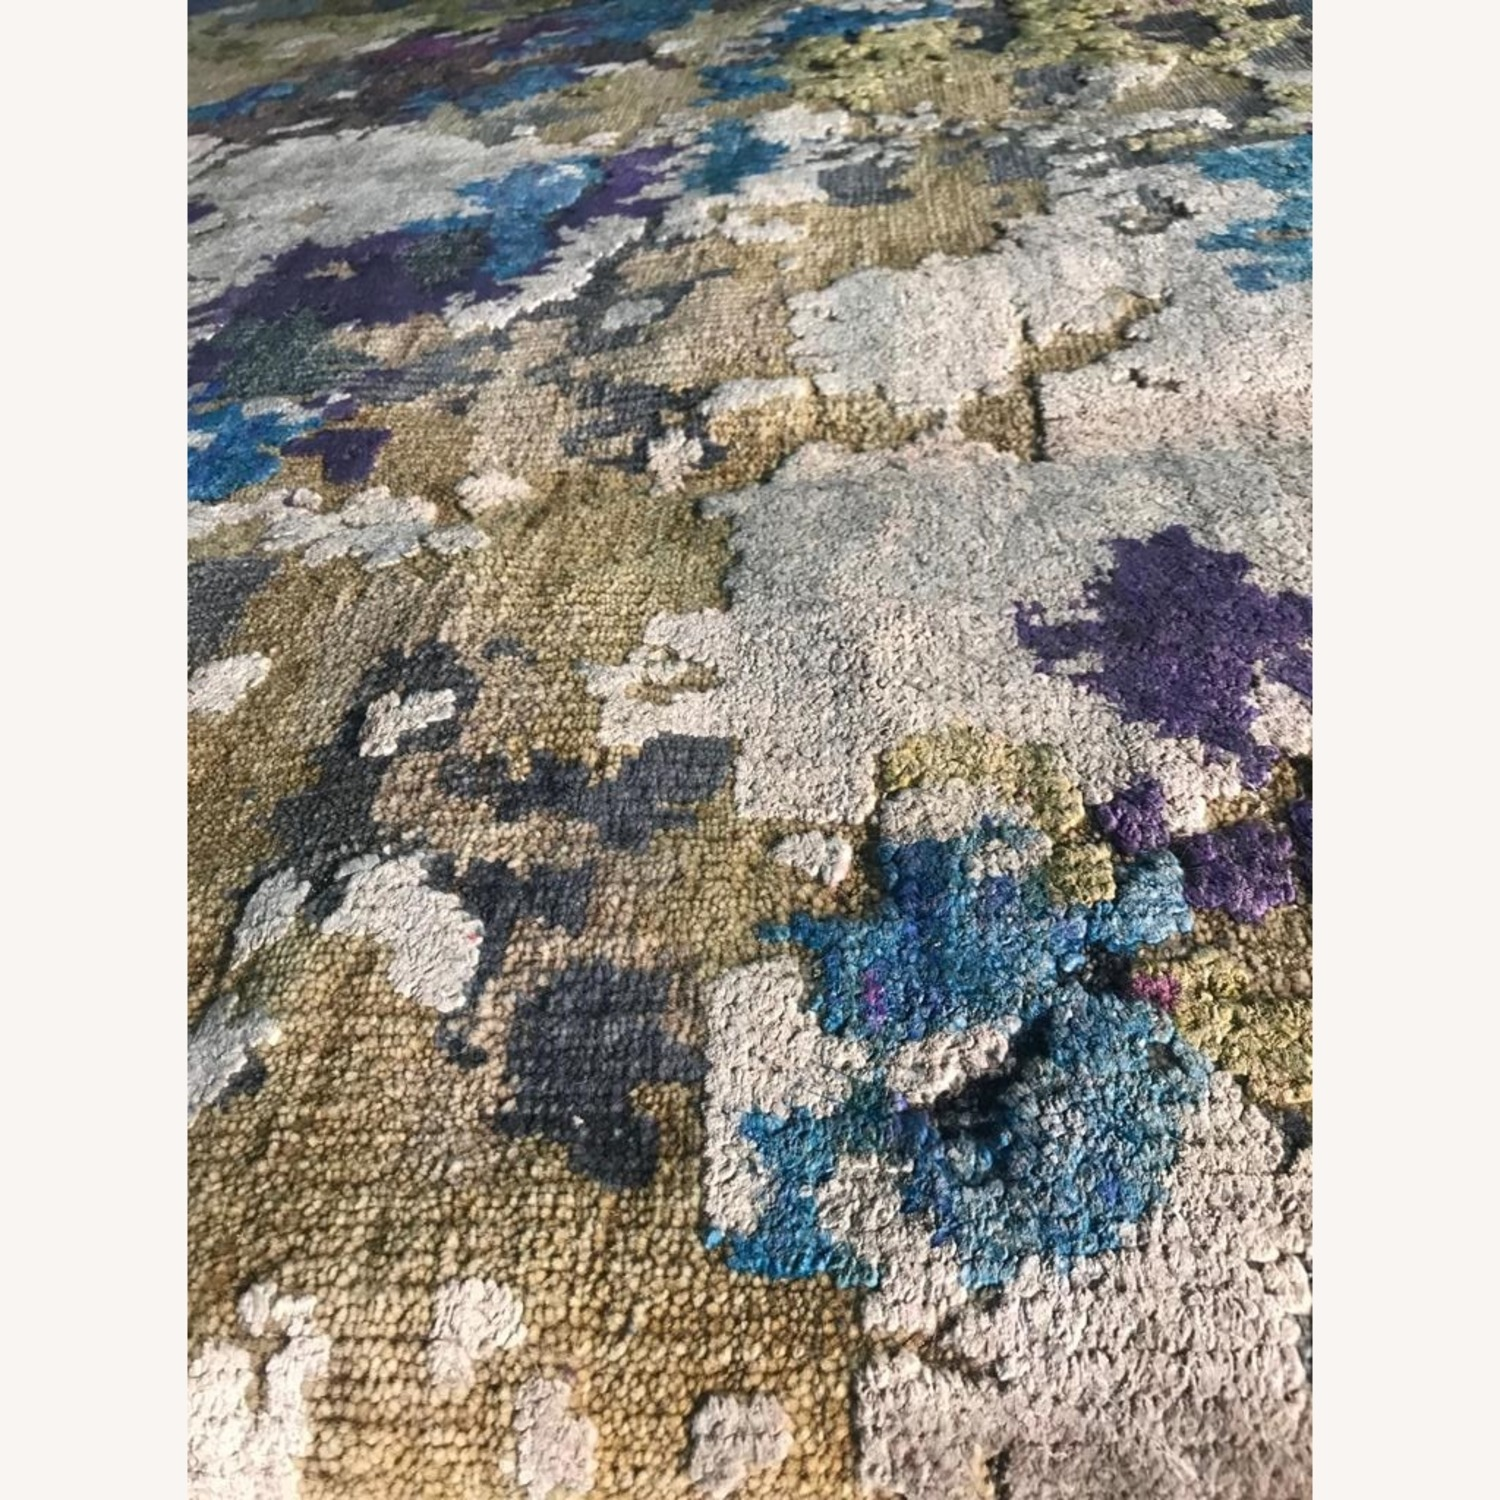 Hand-Knotted Wool & Silk Abstract Organic Woven Rug - image-1